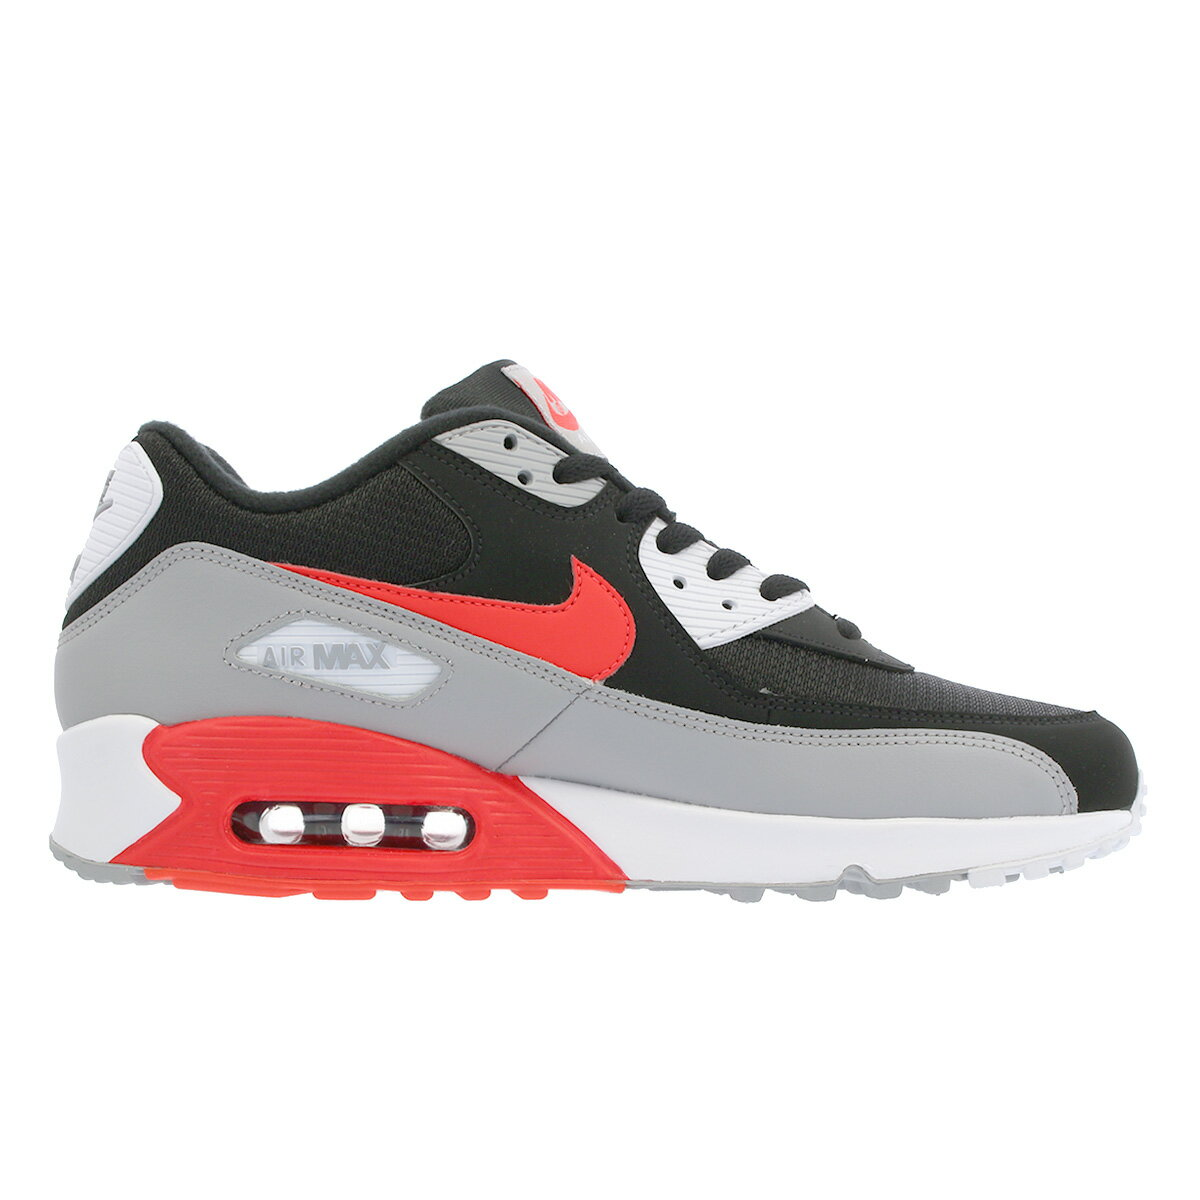 NIKE AIR MAX 90 ESSENTIAL Kie Ney AMAX 90 essential BLACKWOLF GREYBRIGHT CRIMSON aj1285 012